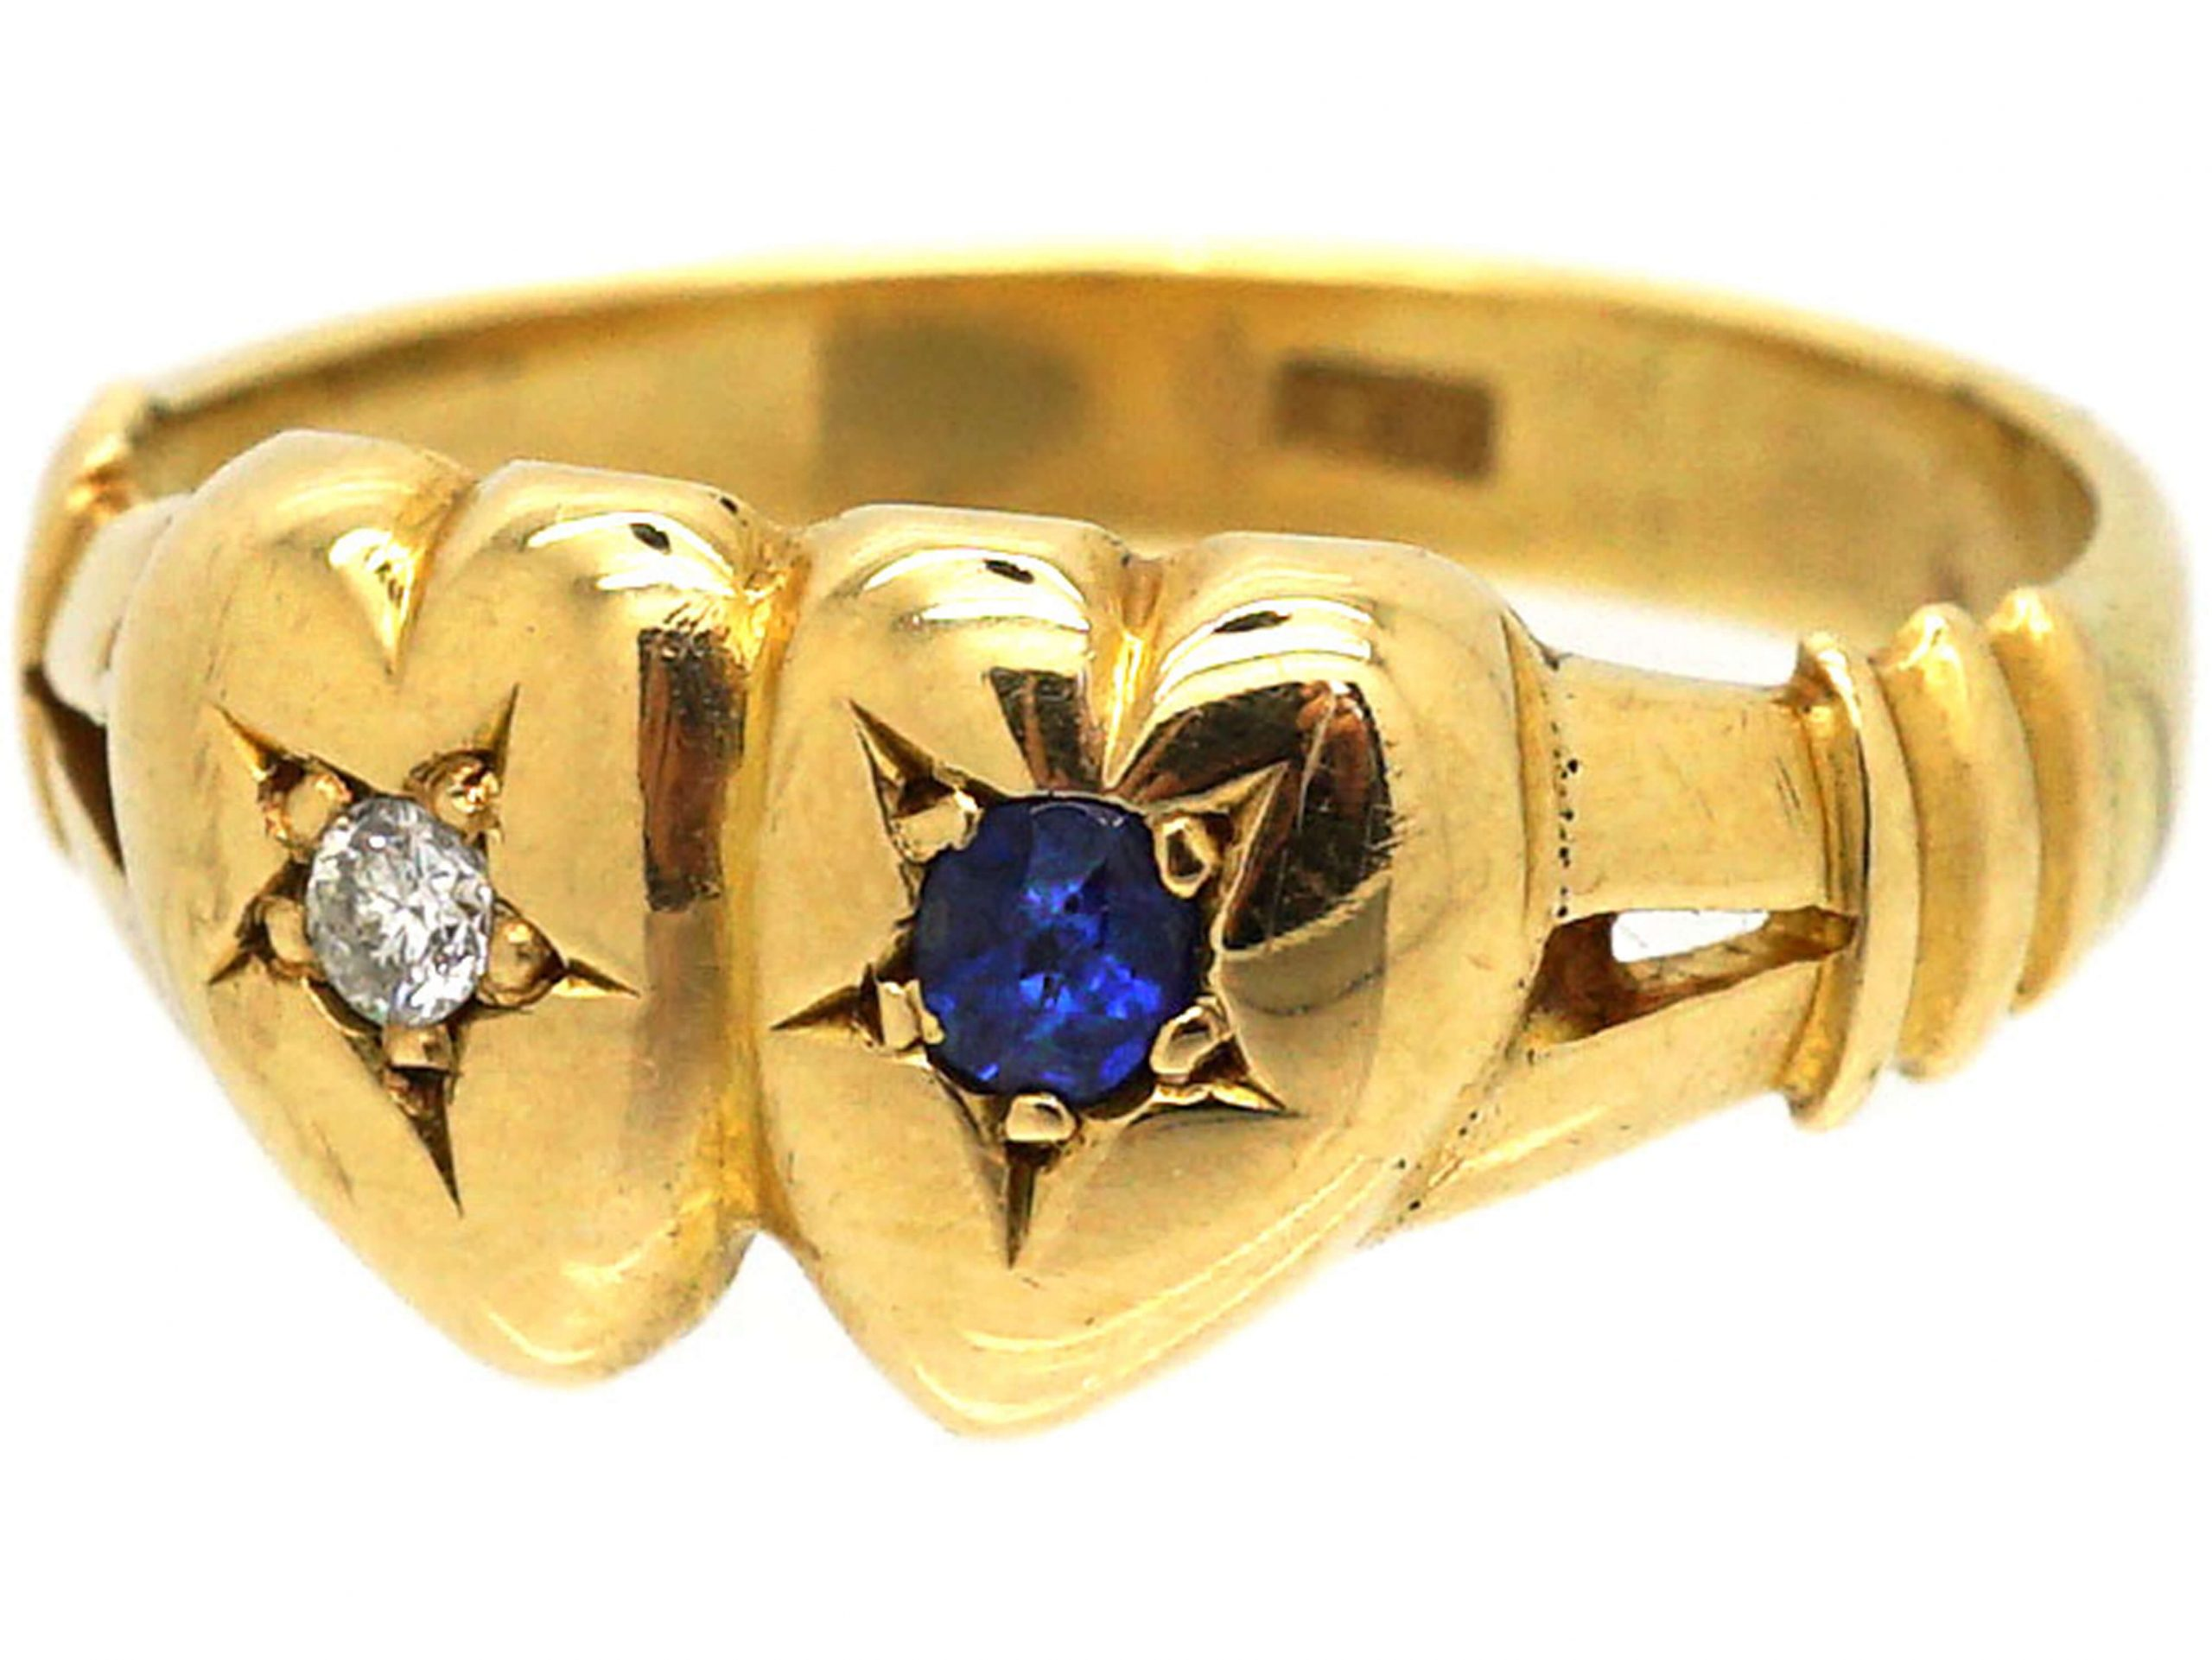 Edwardian 18ct Gold Double Heart Ring